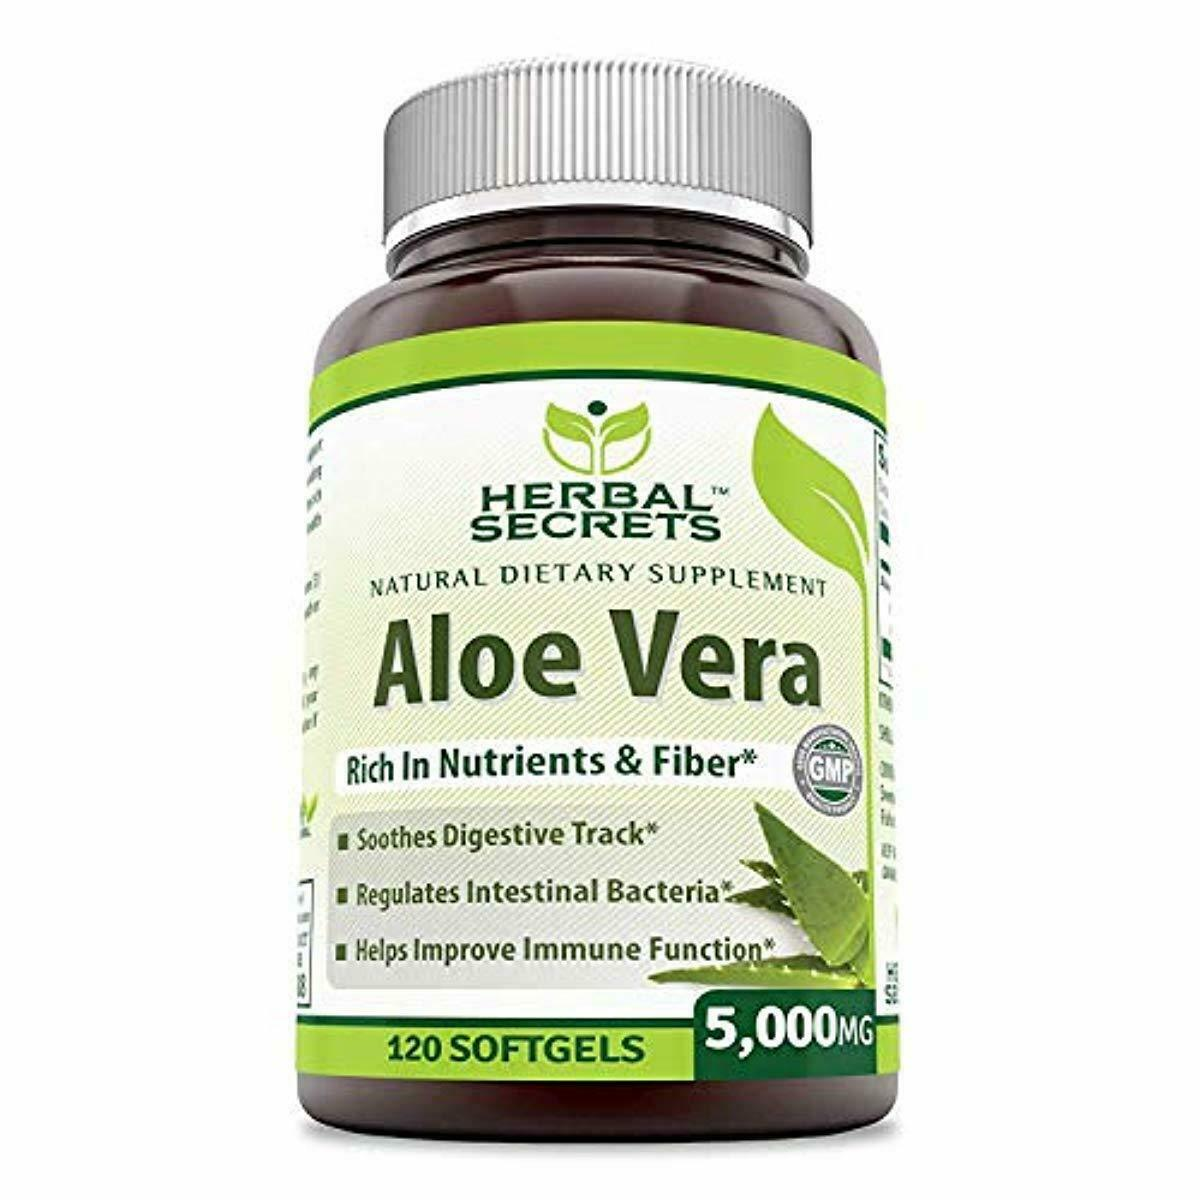 Herbal Secrets Aloe Vera Natural Dietary Supplements, 120 So